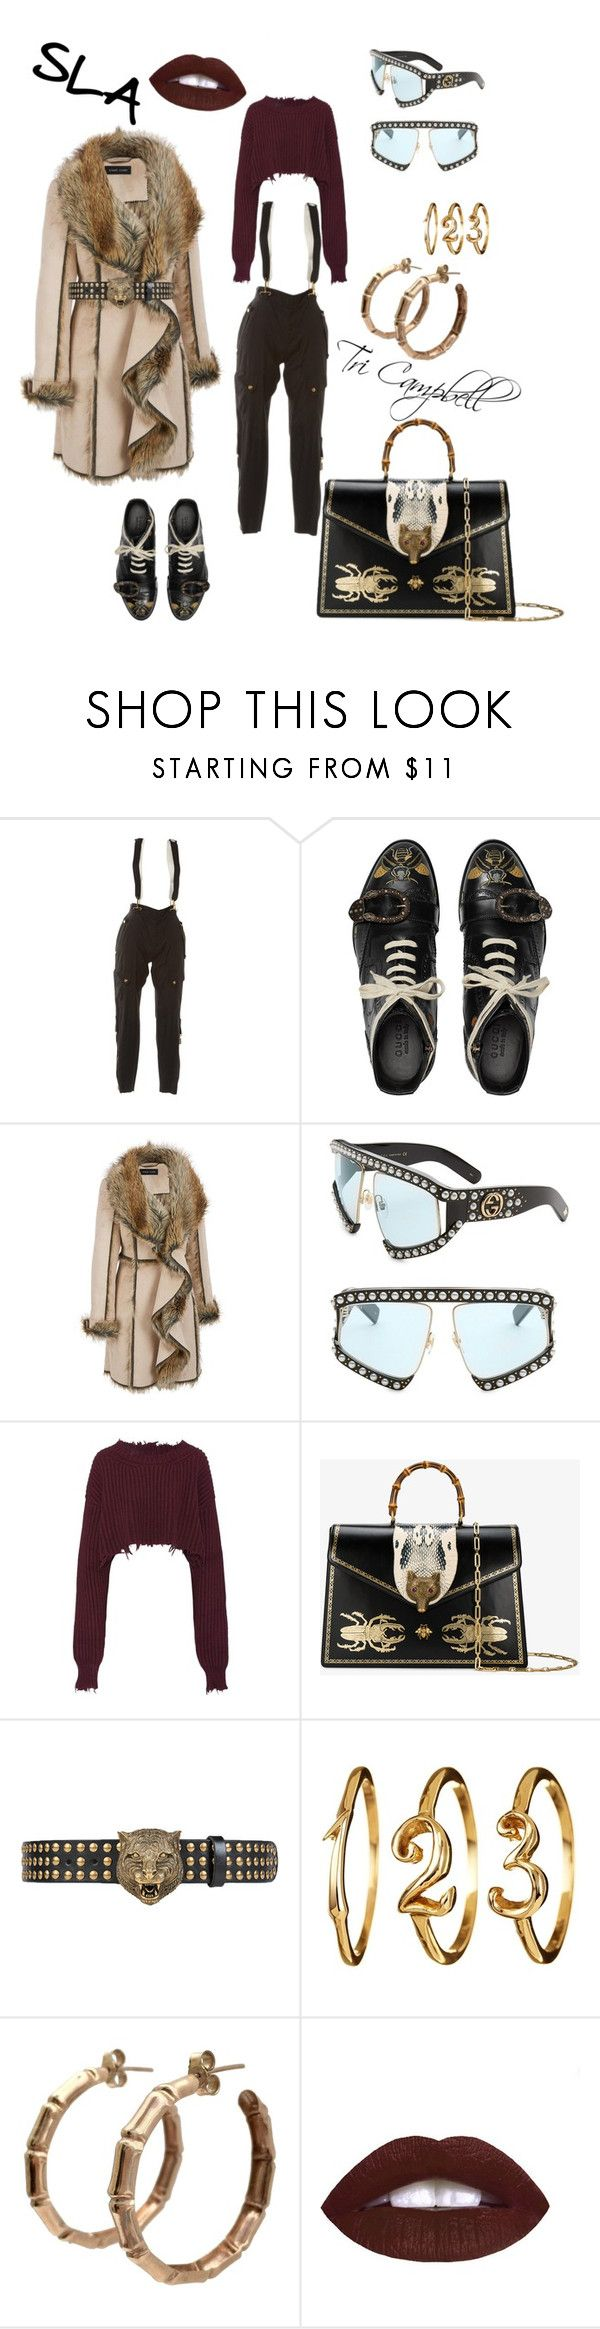 """""""So Gucci"""" by tritheslaqueen on Polyvore featuring Gucci, Unravel and plus size clothing"""